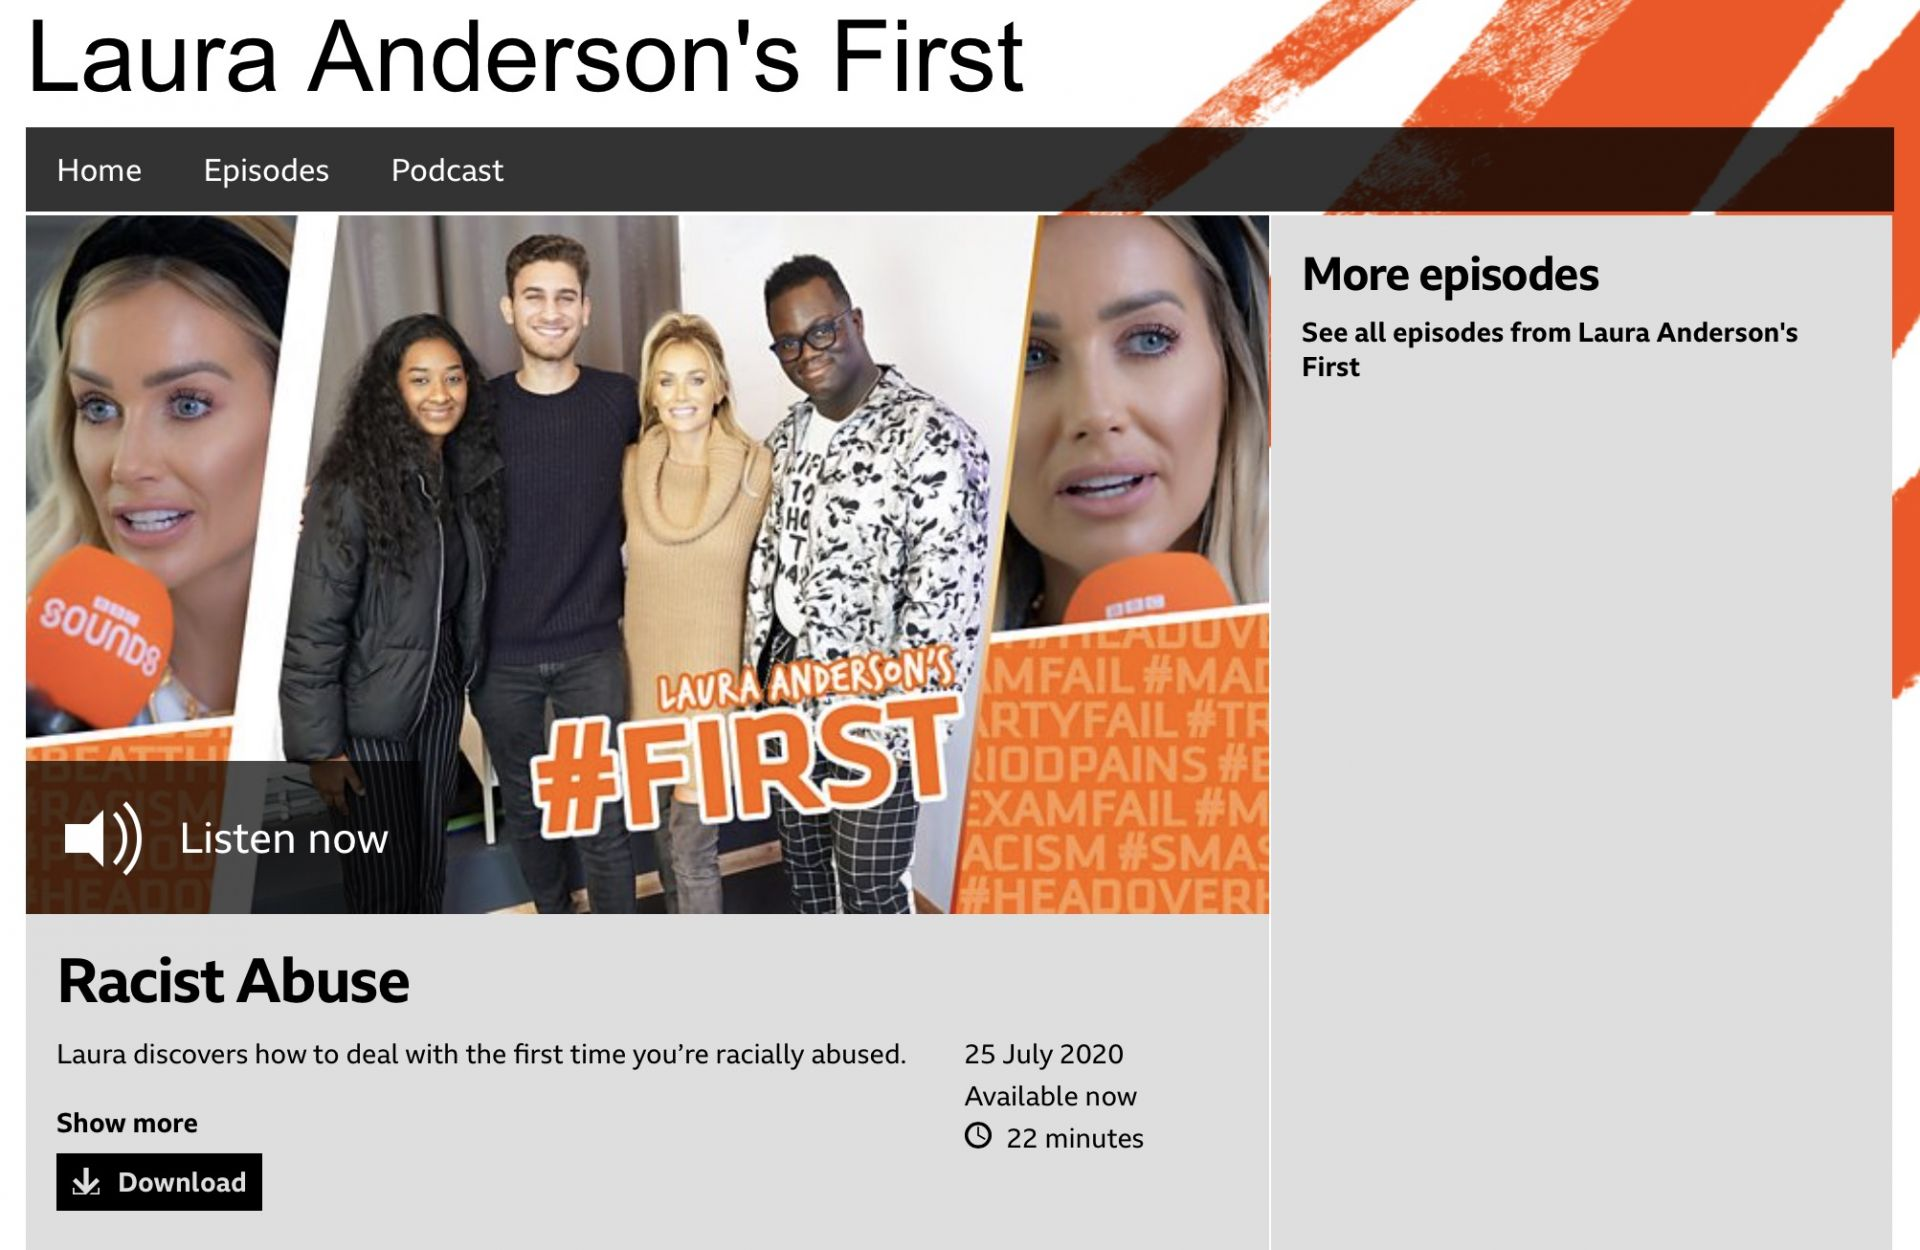 Laura Anderson's First second series launches on BBC Sounds